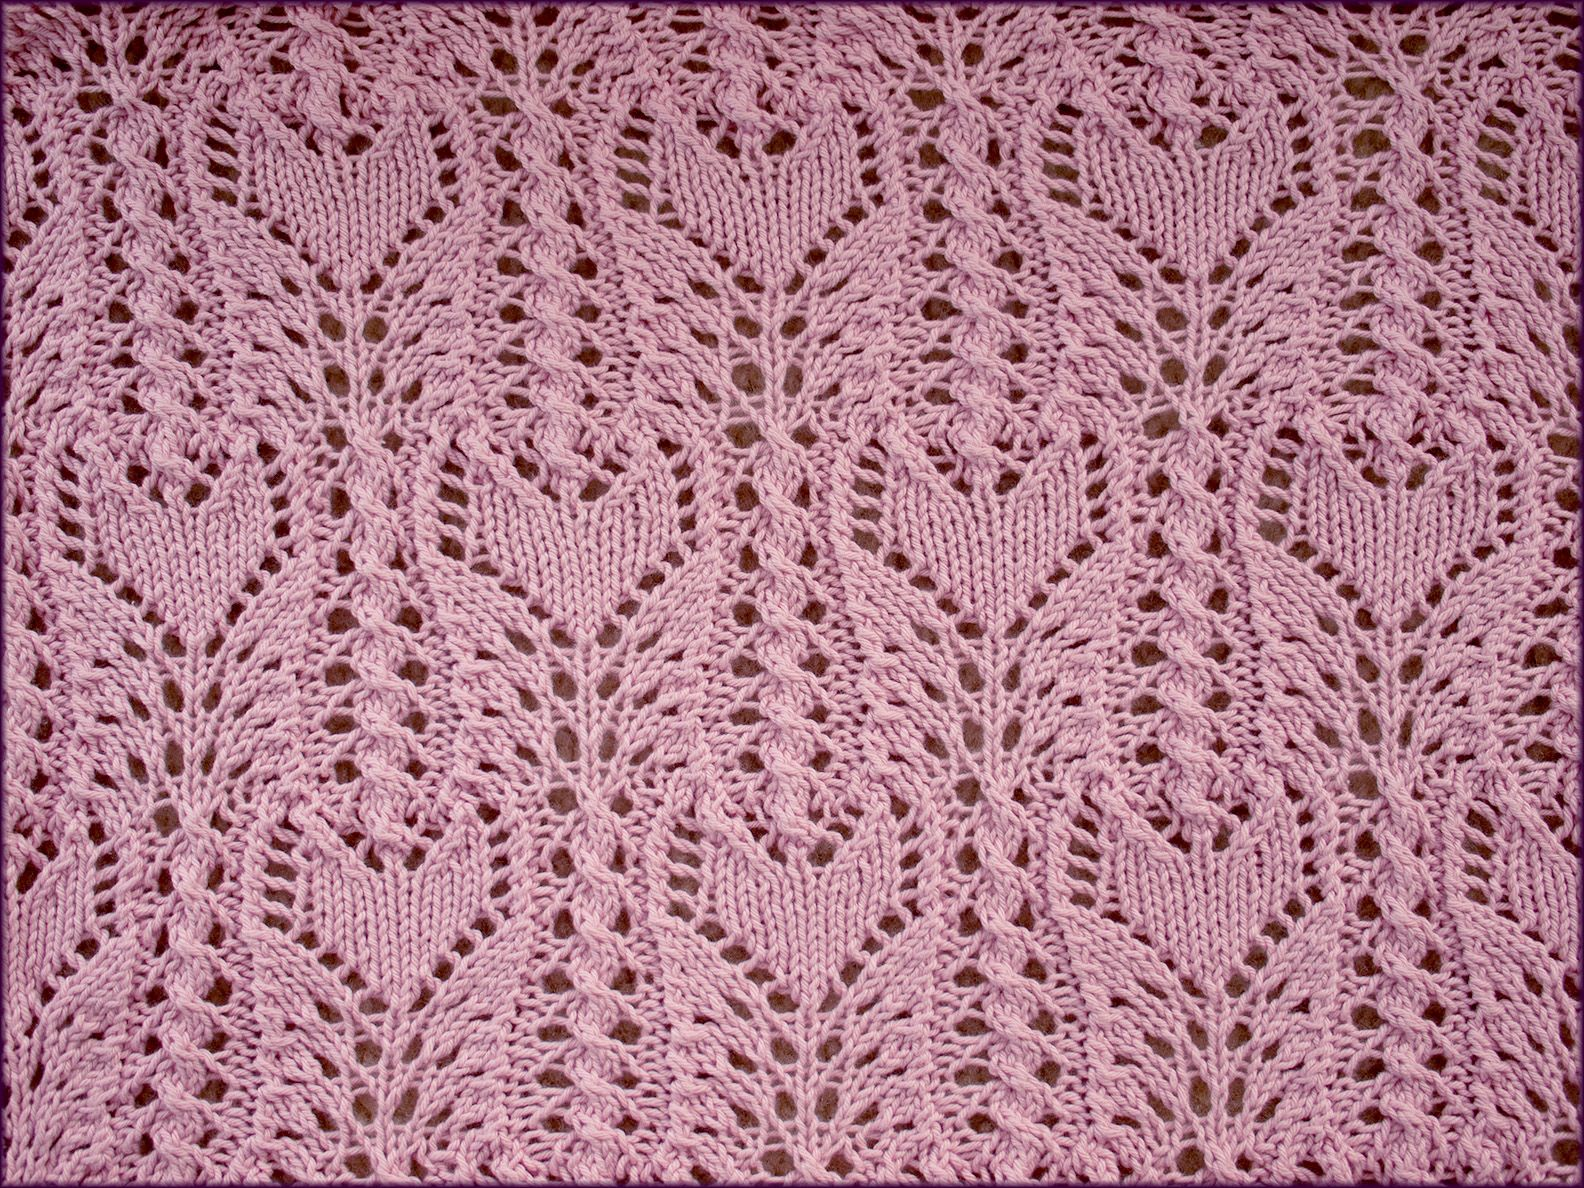 Ffct wrap knitting pattern this features tulip lace flowers ffct wrap knitting pattern this features tulip lace flowers topping tightly cabled stems and set bankloansurffo Choice Image